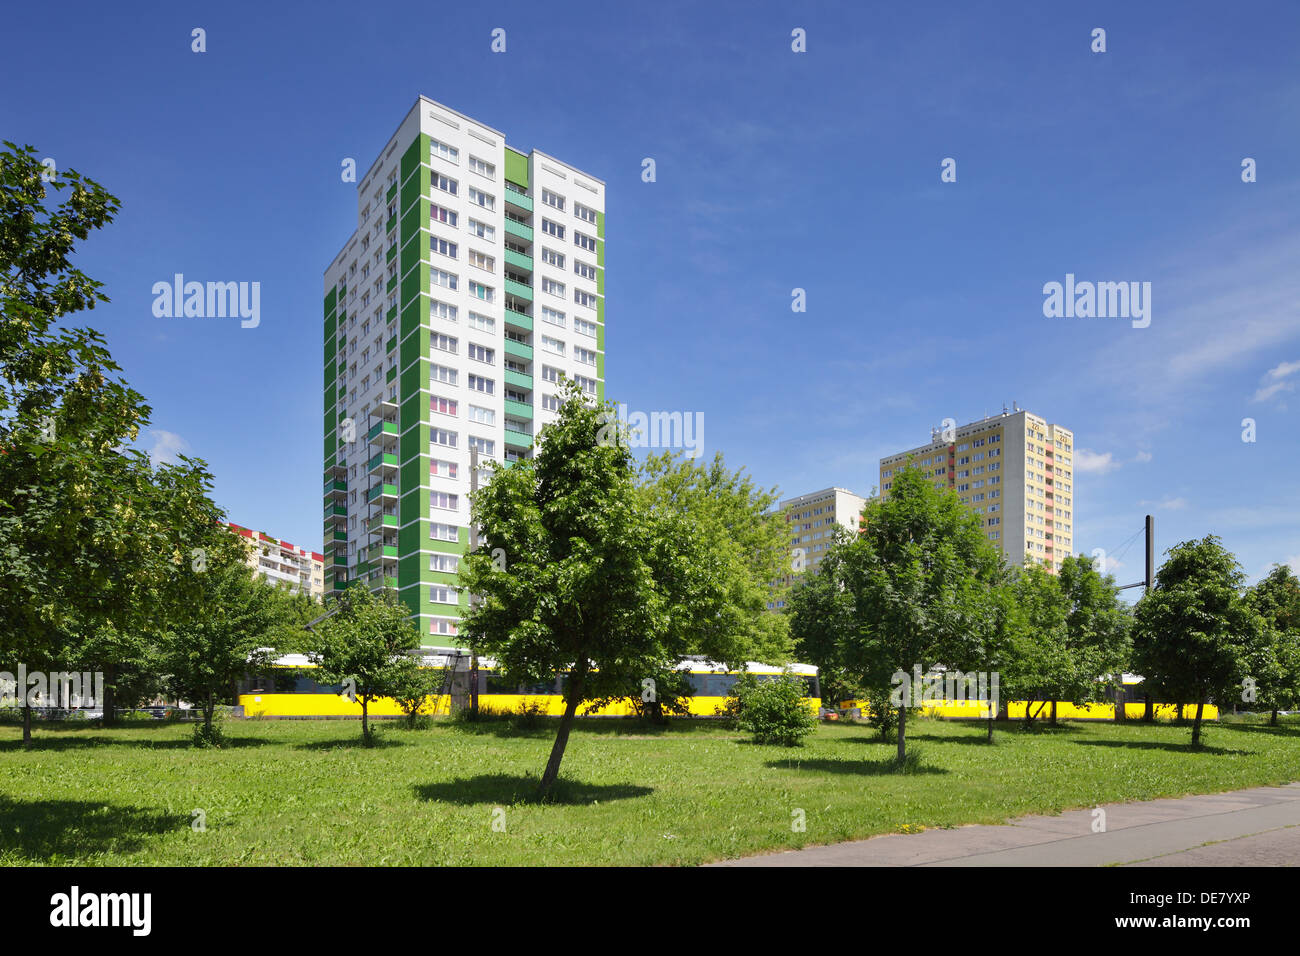 Landsberger Allee Stock Photos Landsberger Allee Stock Images Alamy